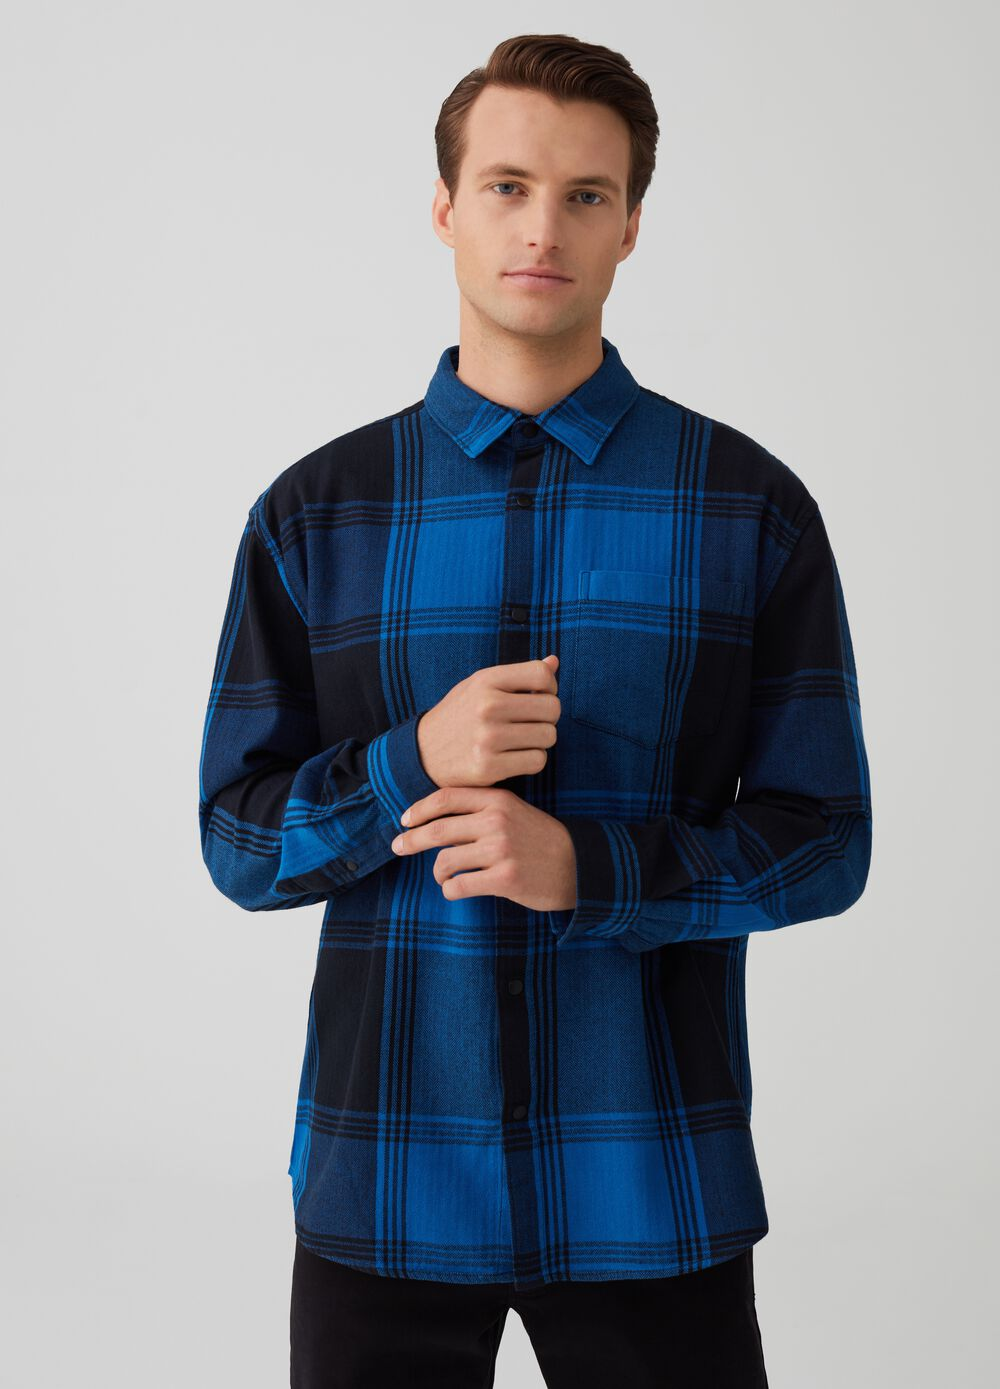 100% cotton check shirt jacket